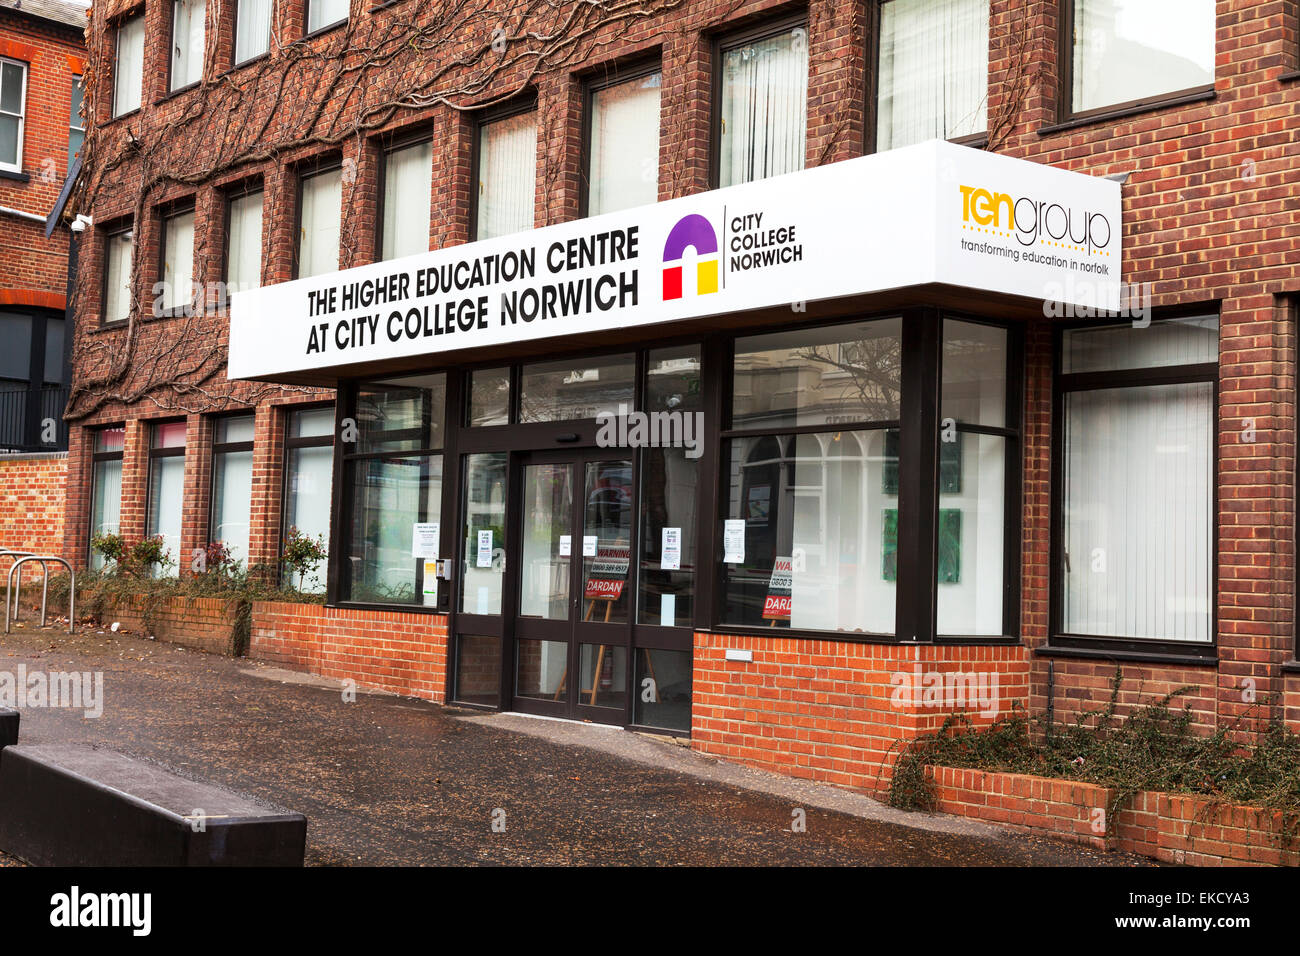 The higher education centre at city college Norwich Norfolk building front entrance sign facade UK England center - Stock Image